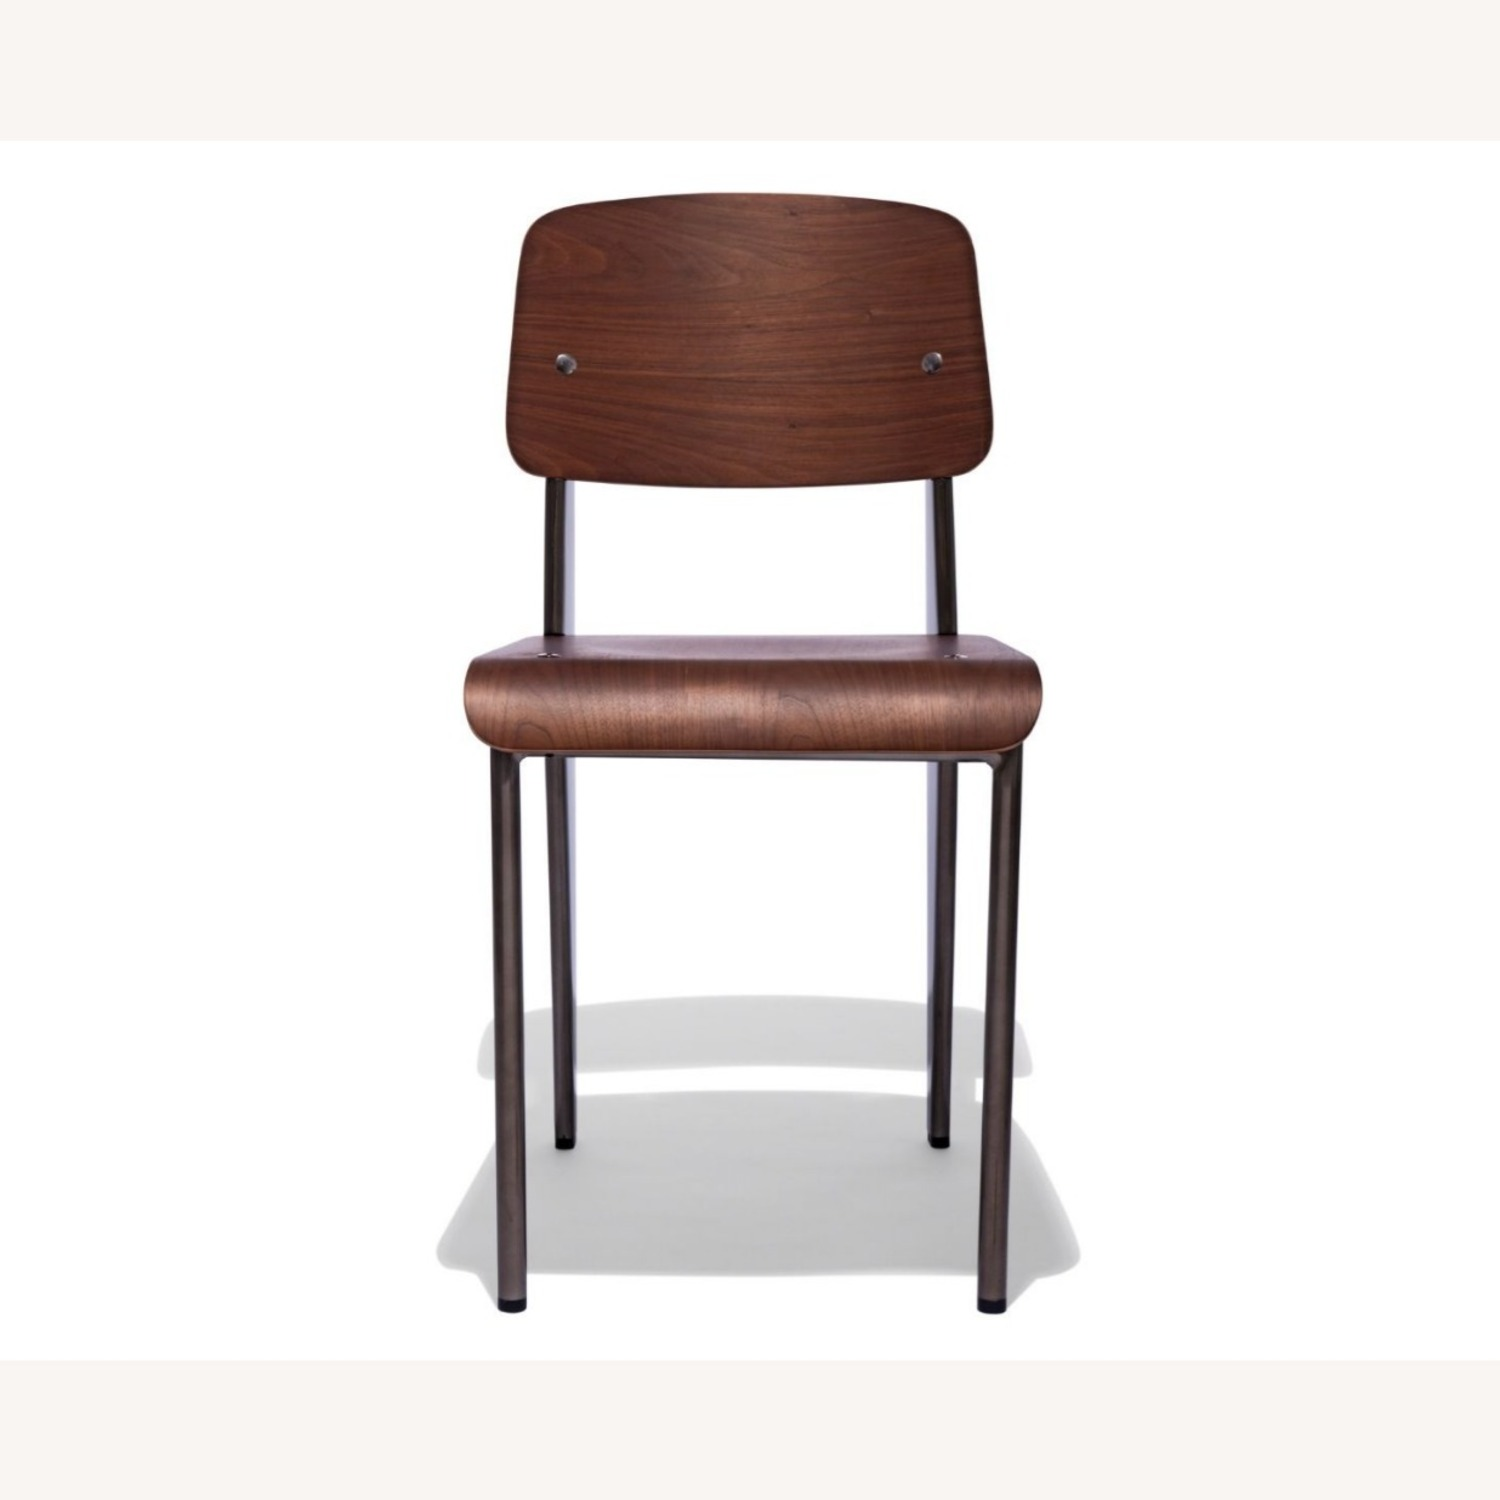 Industry West Prouve Standard Chair - image-2